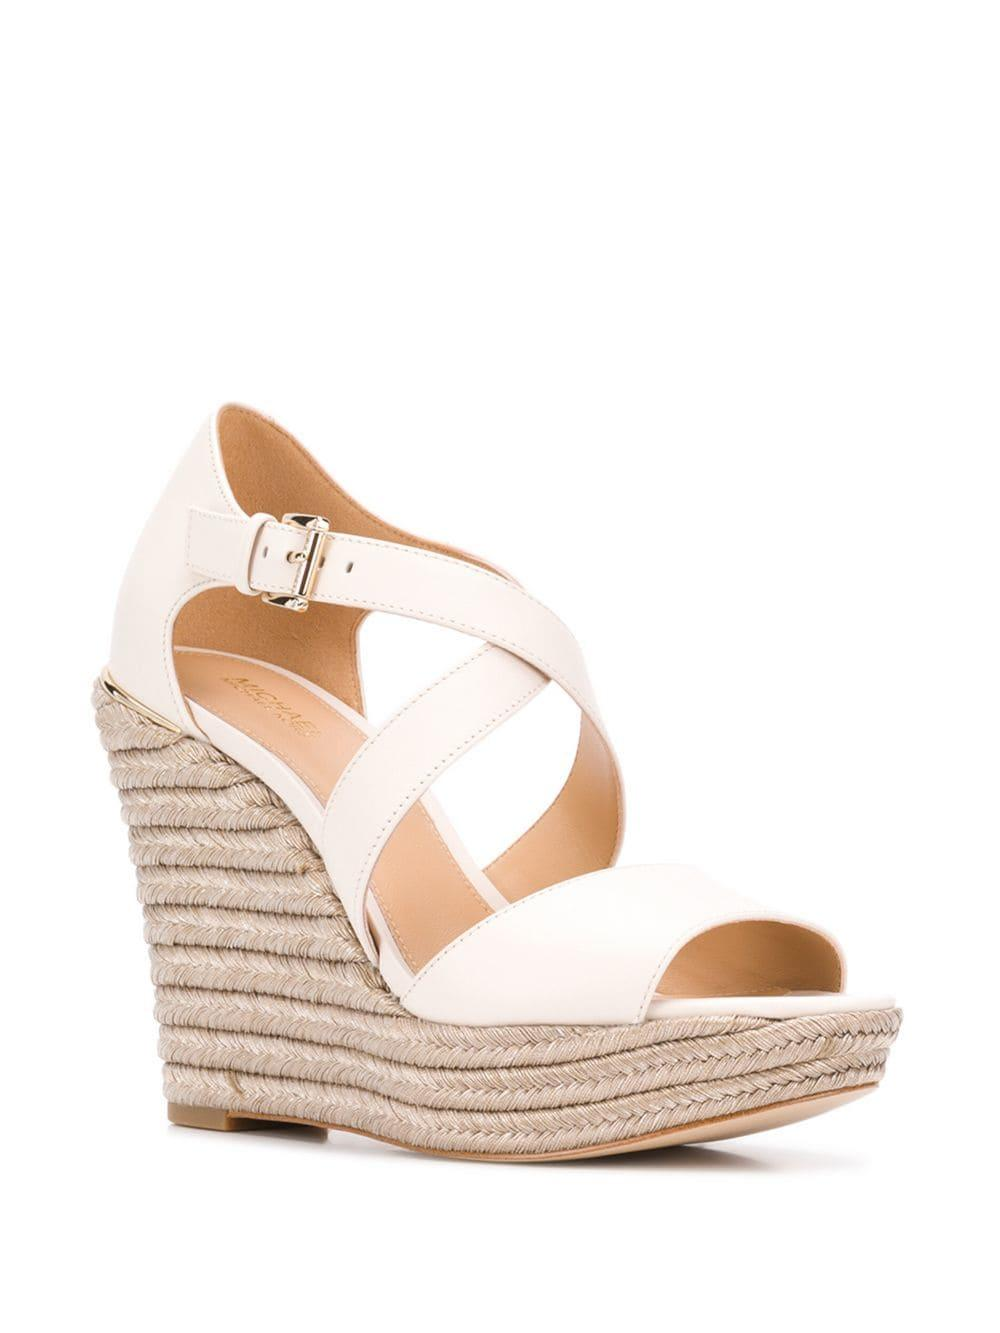 b45909a60f4 MICHAEL Michael Kors - Multicolor Wedge Sandals - Lyst. View fullscreen